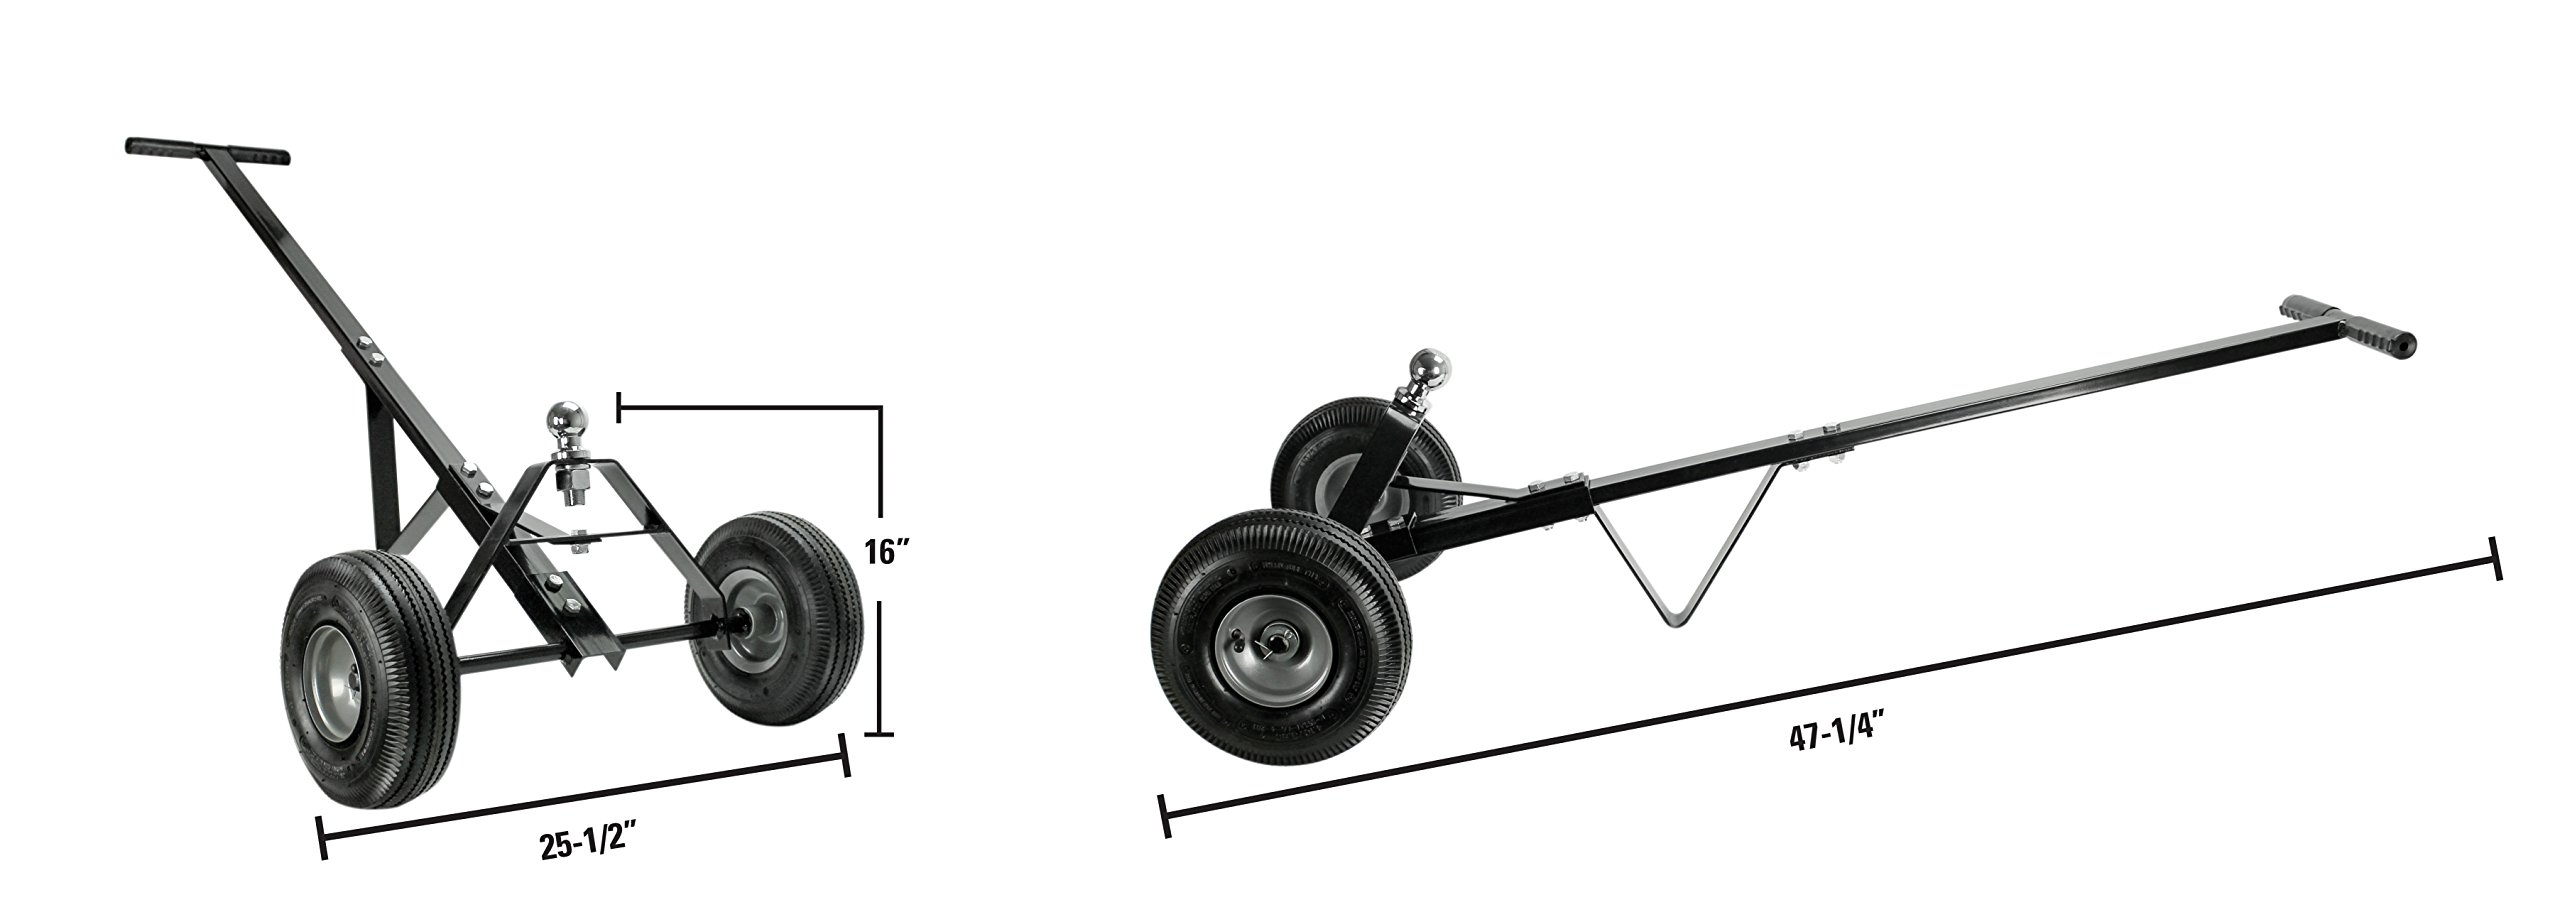 Extreme Max 5001.5766 Trailer Dolly-600 lb by Extreme Max (Image #2)